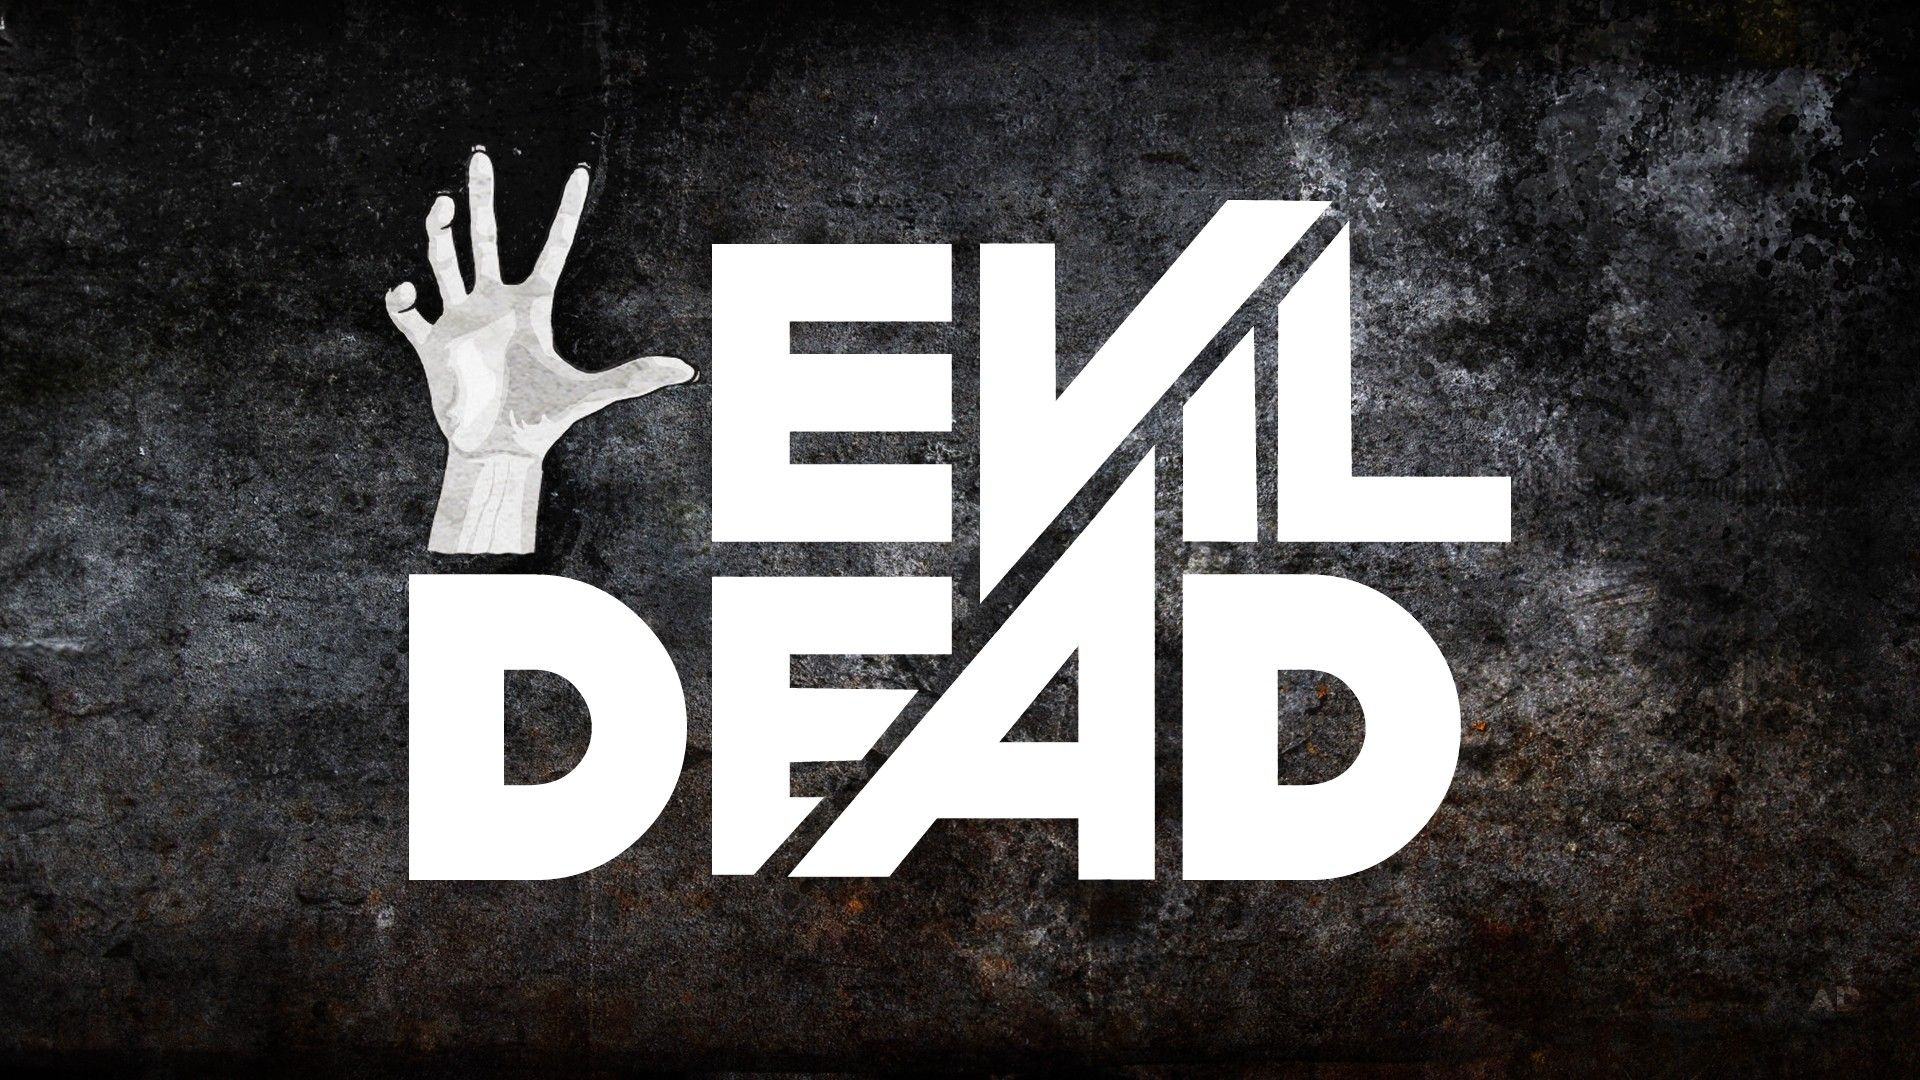 Evil Dead 2016 Wallpapers 1920x1080 - Wallpaper Cave